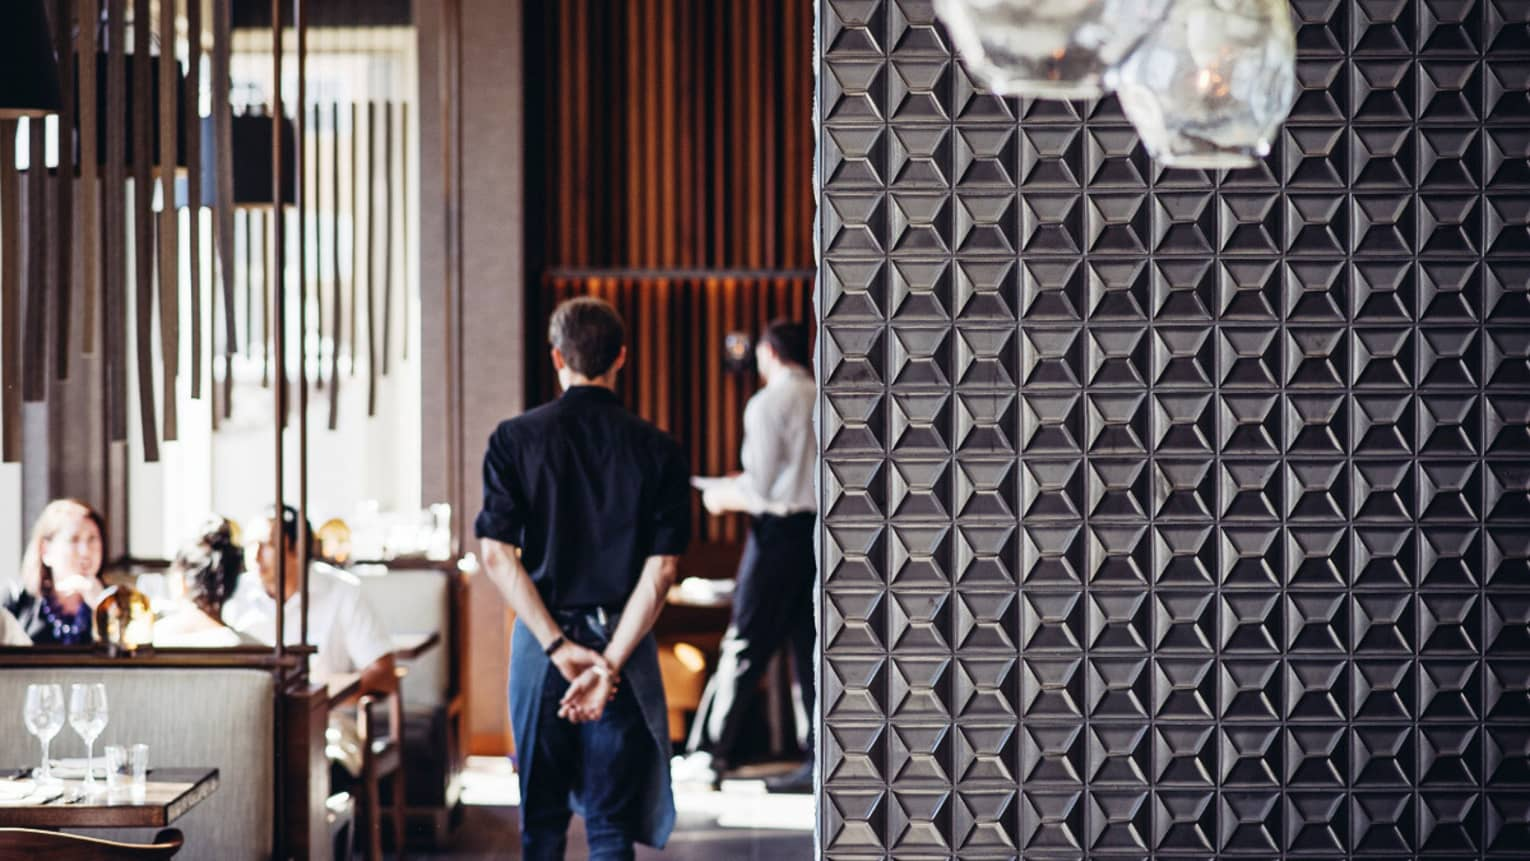 Server walks with hands behind back past dining tables, beyond decorative metal wall